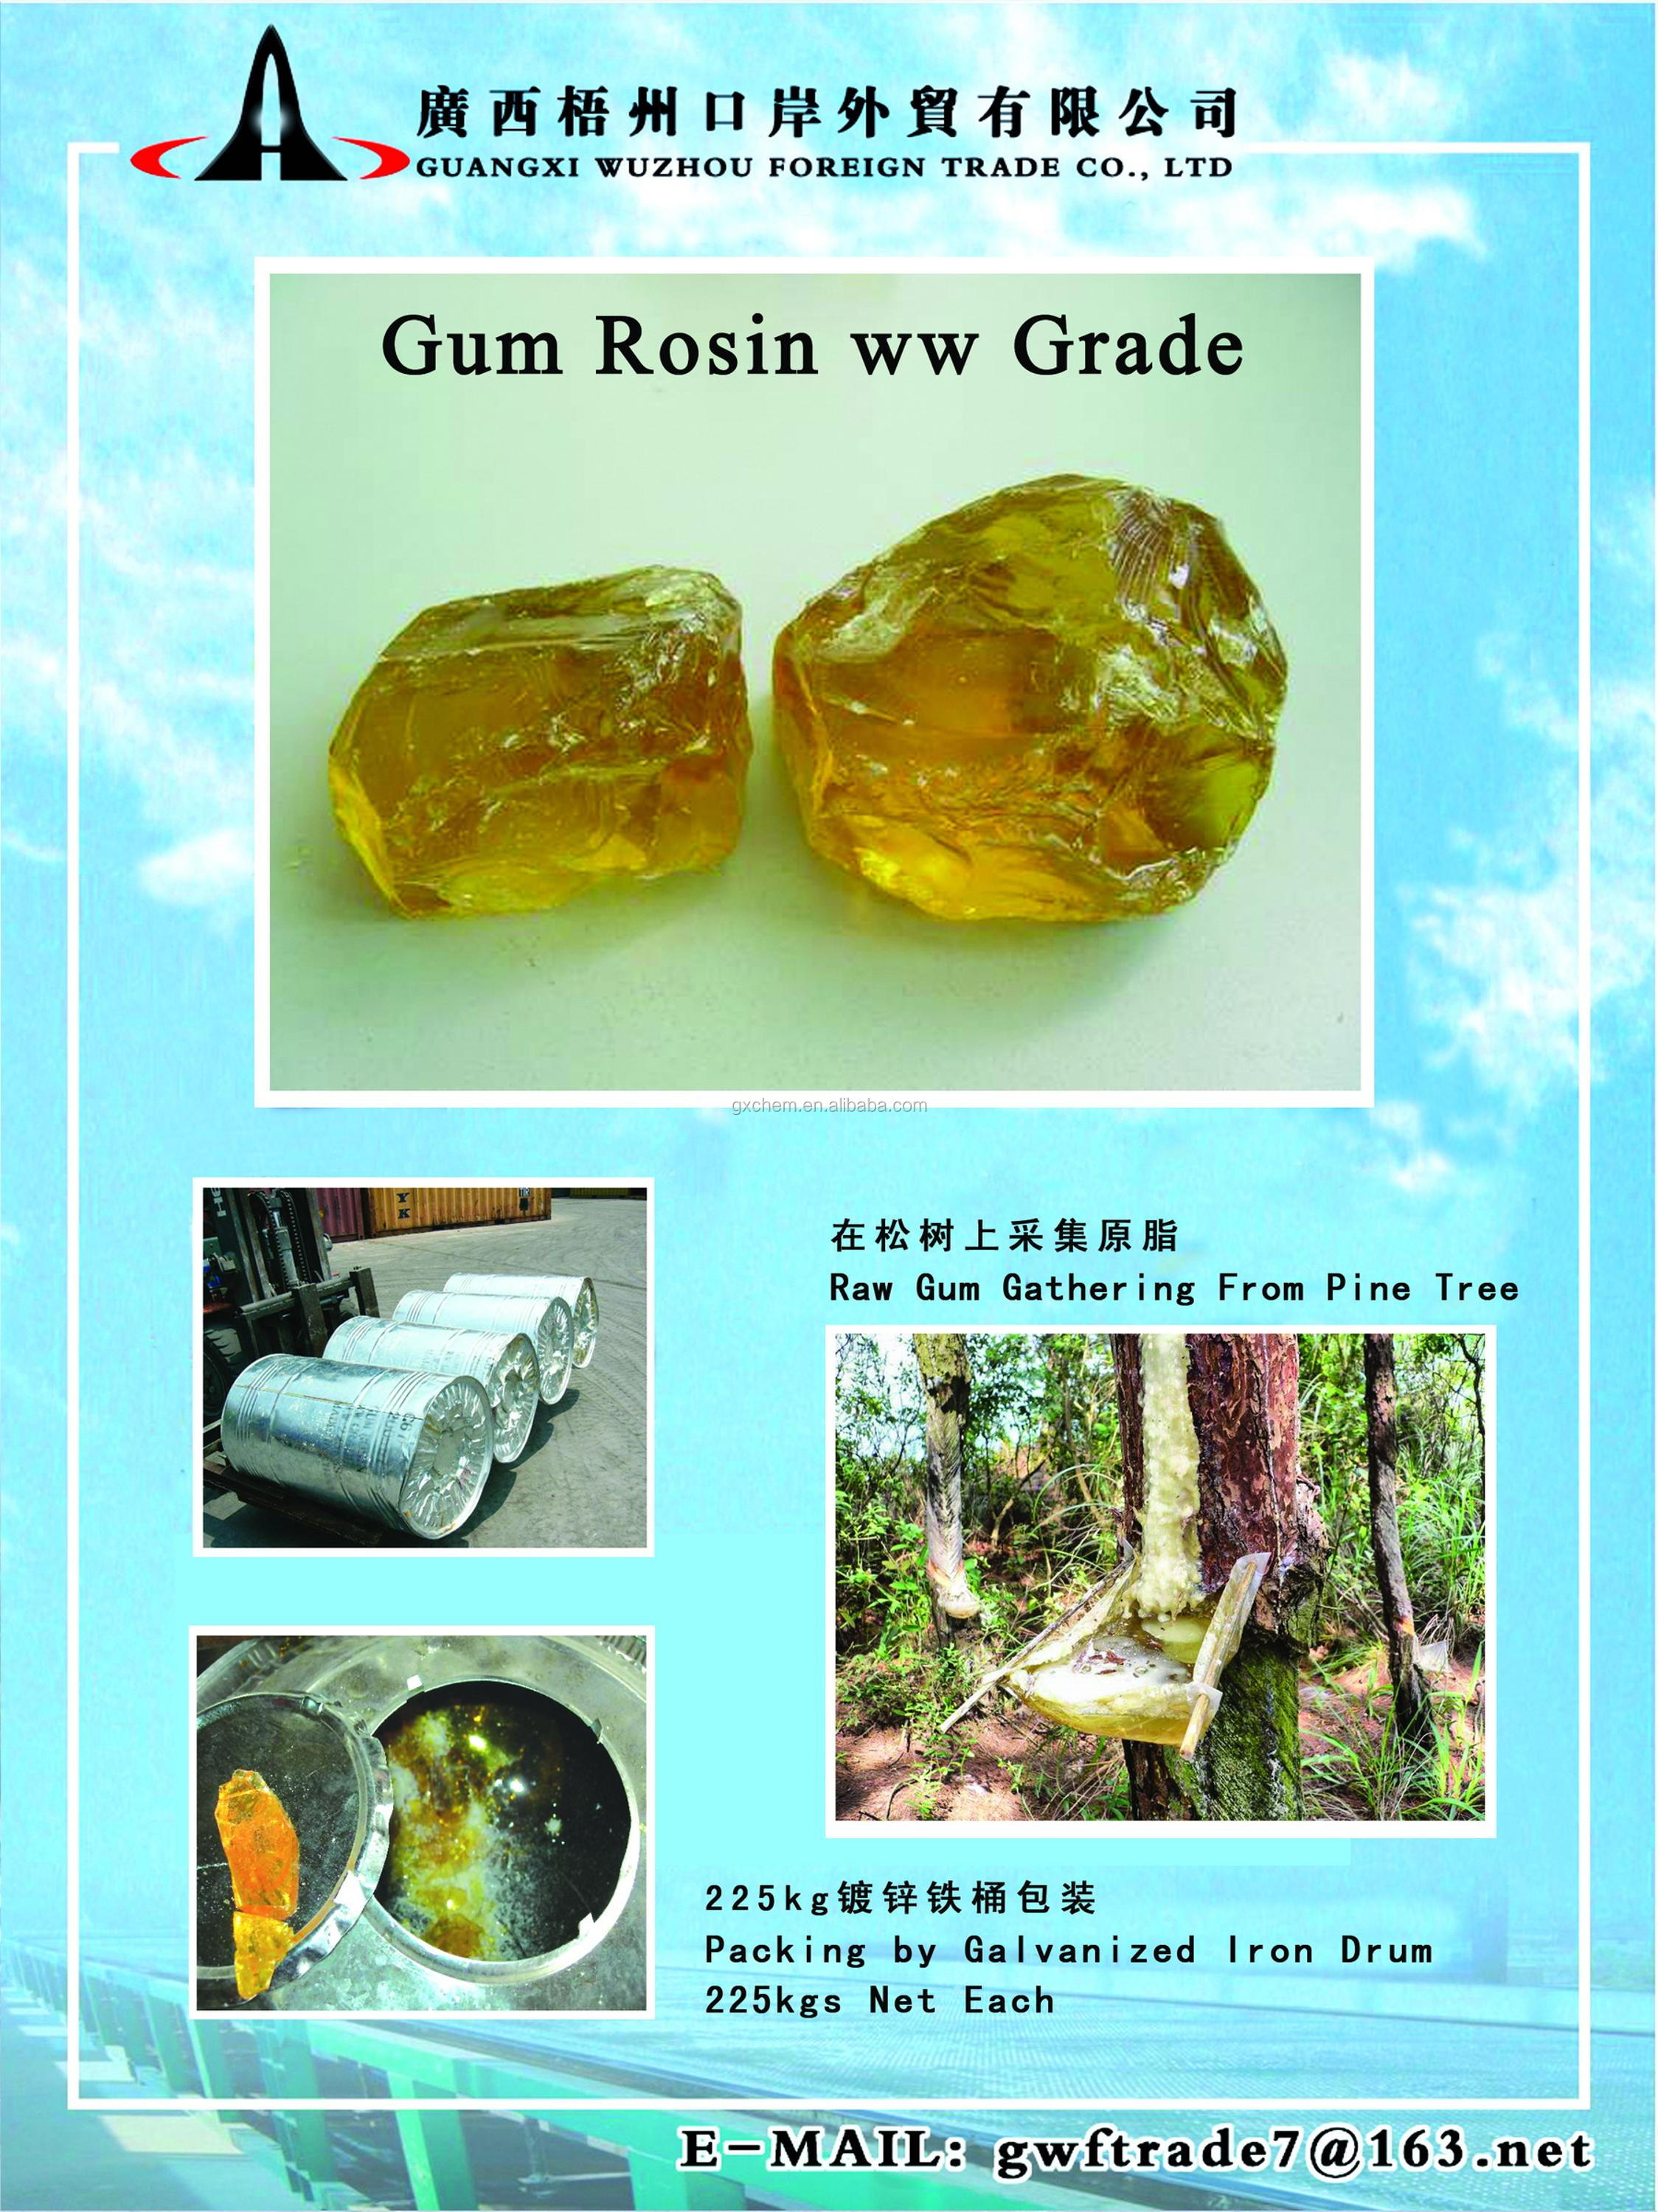 Food Additive Glycerol Ester of Gum Rosin